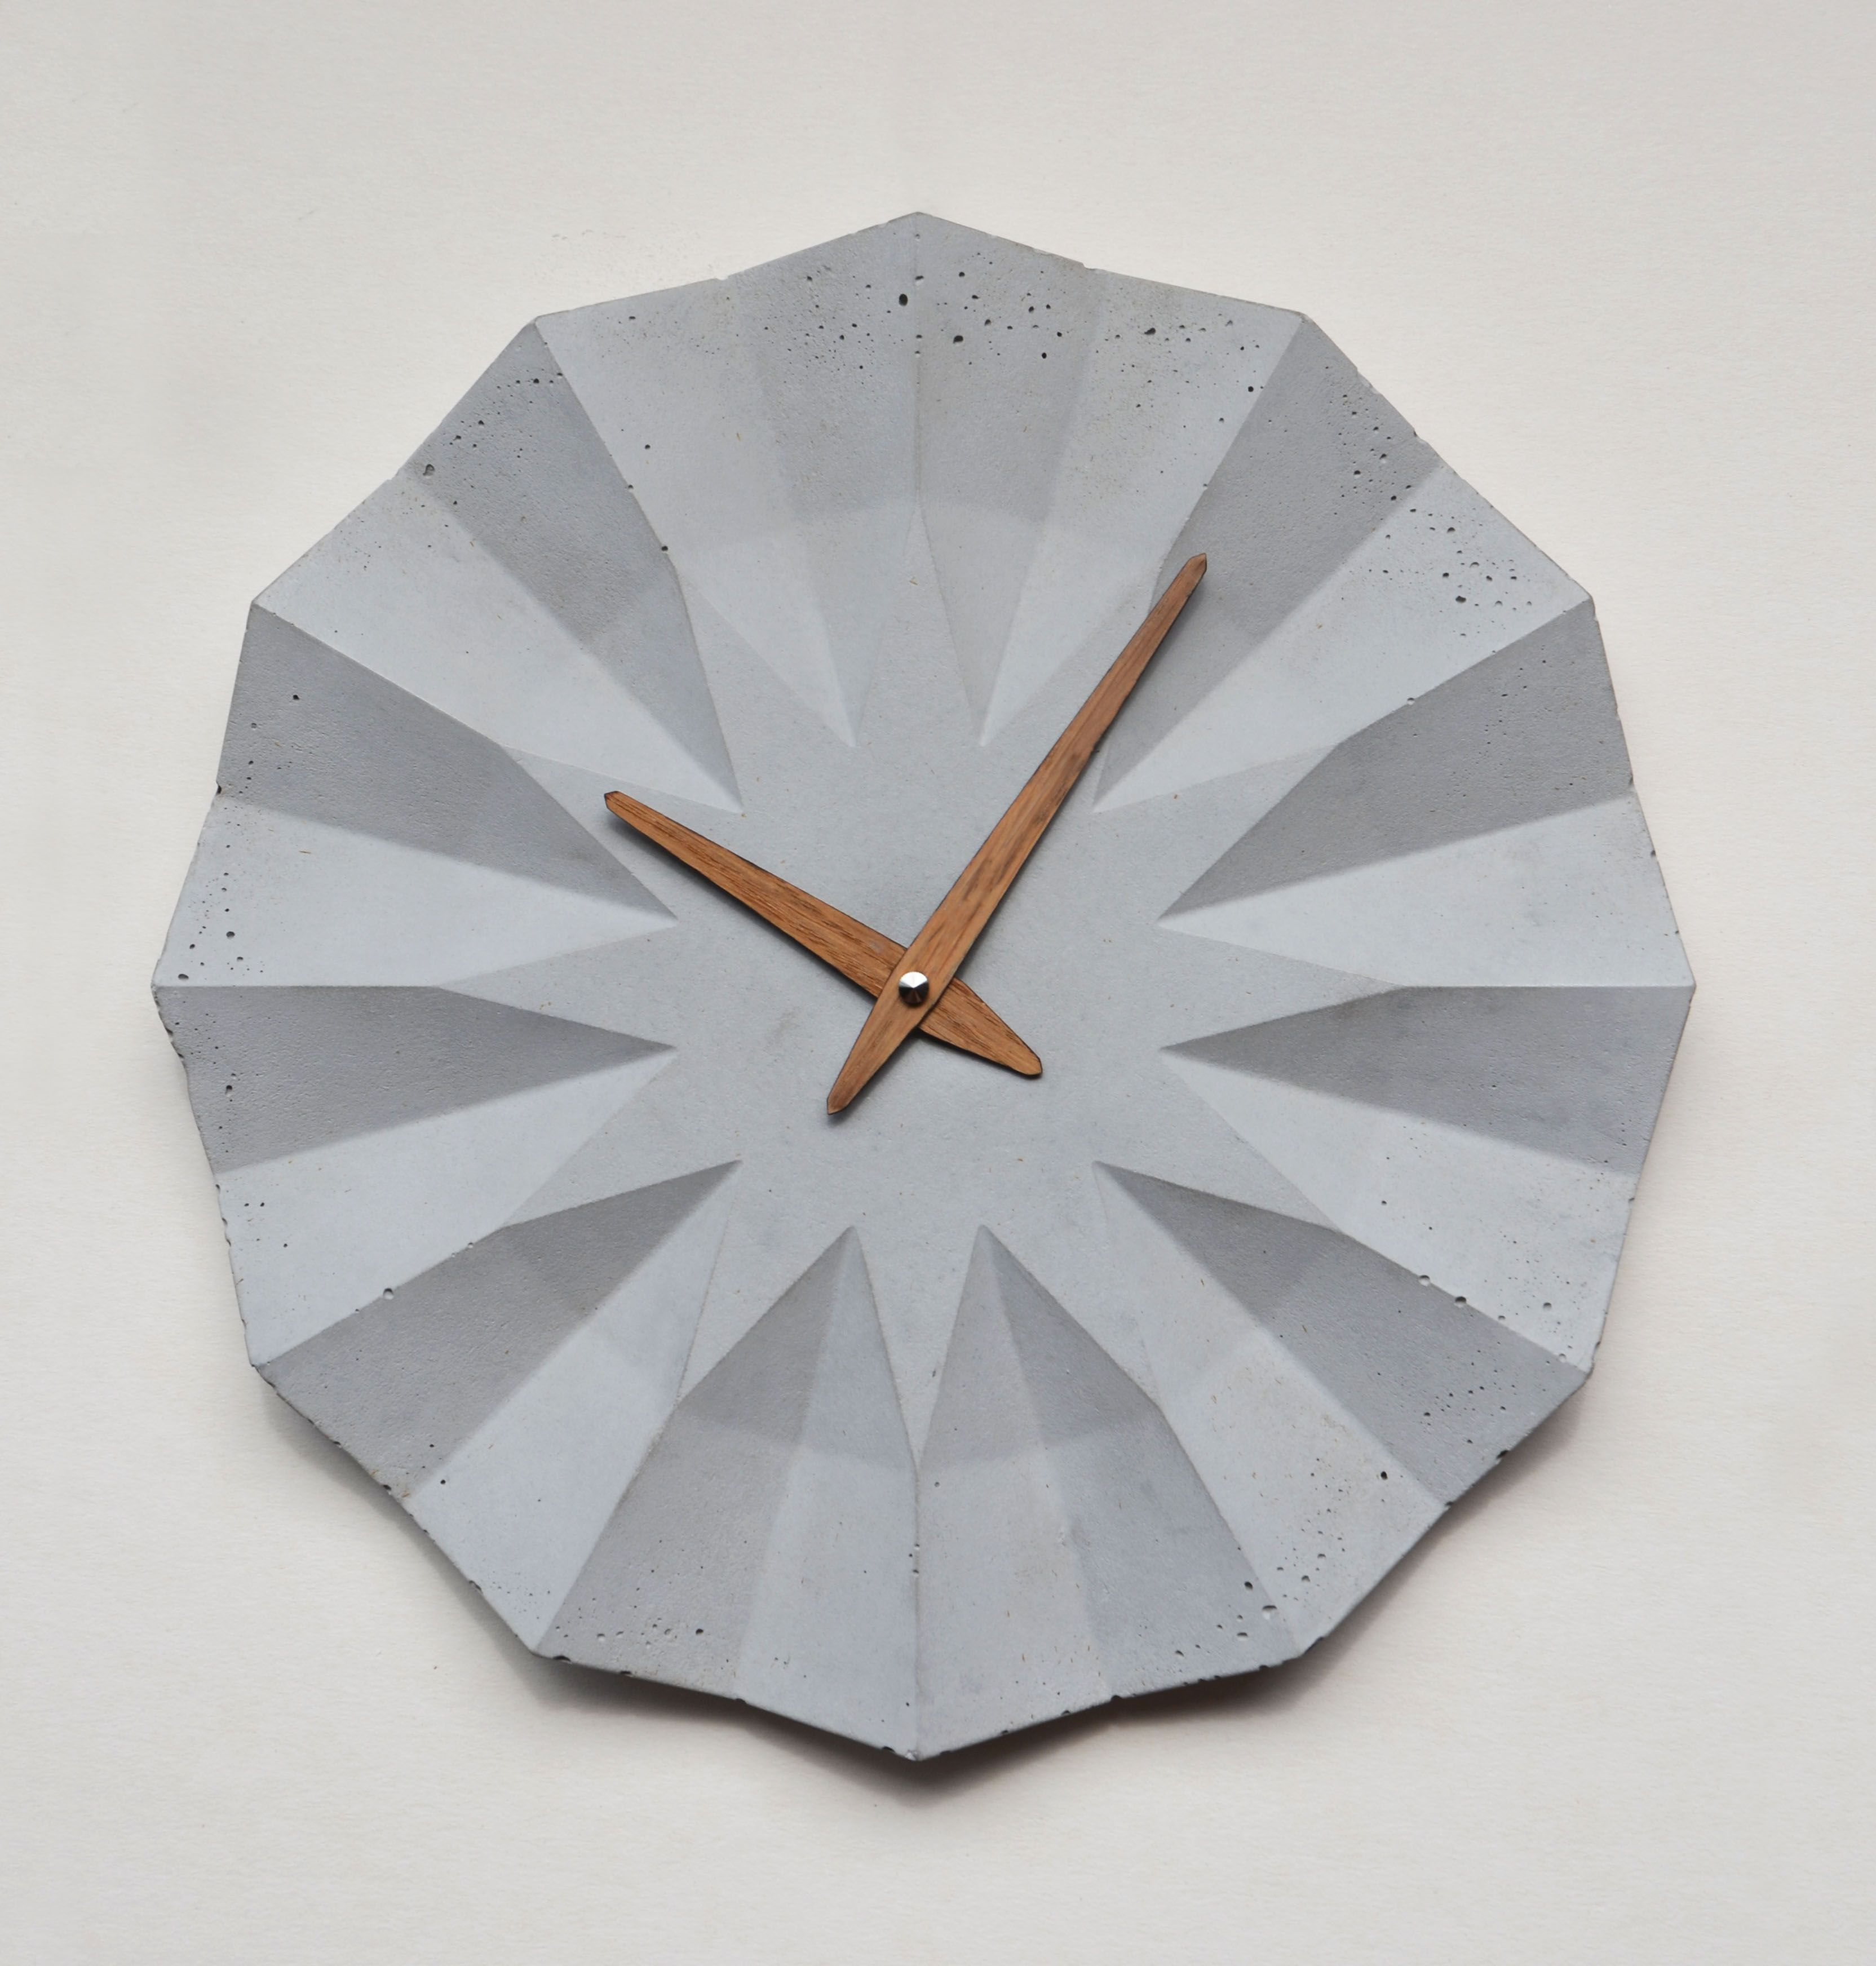 Concrete clock with oak clockhand by Moha design | Industrial ...